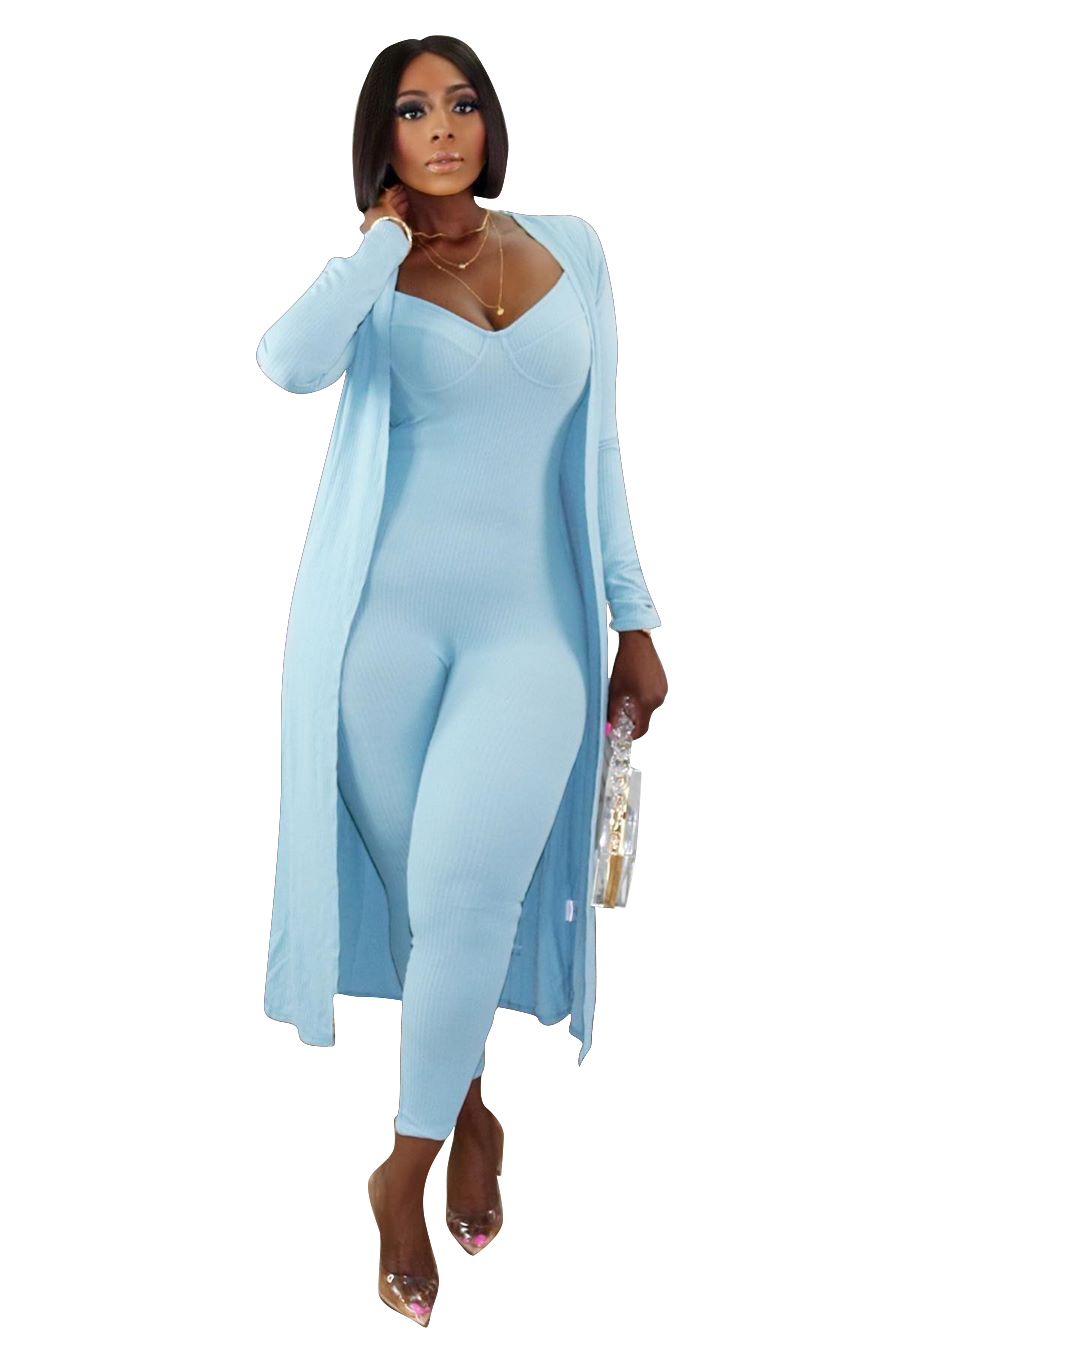 foma-TS1068 womens fall clothing 2020 long sleeve two piece women outfit with cover bodysuit vendors clothing